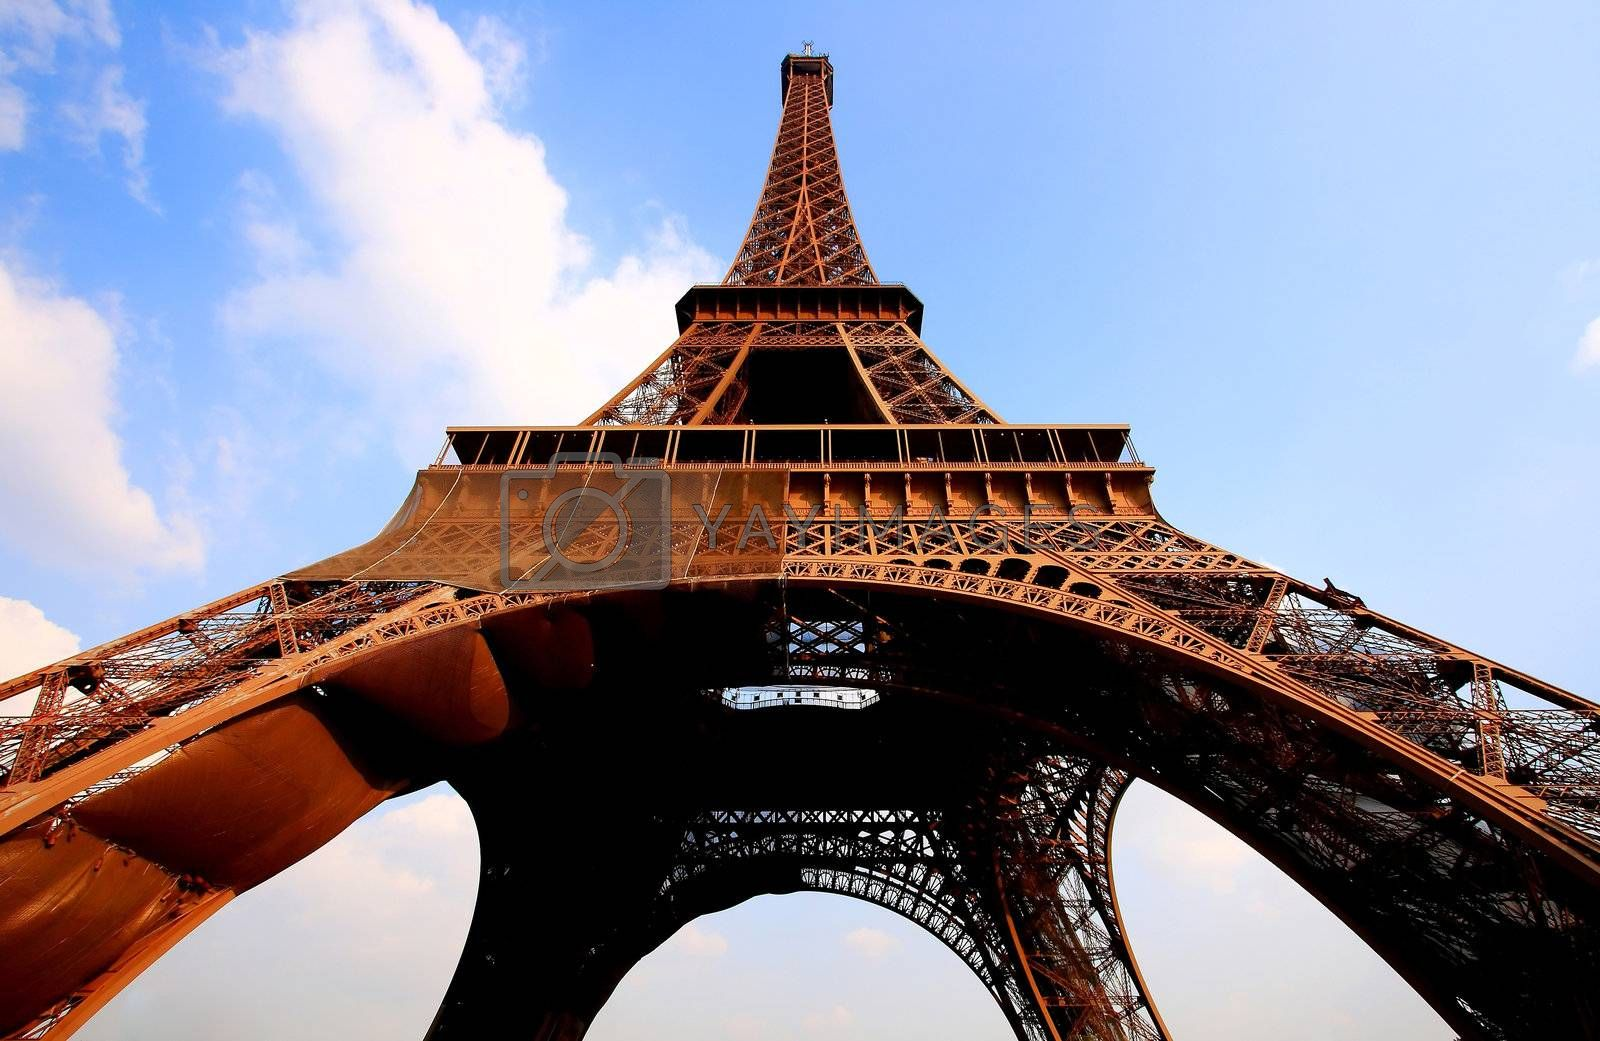 Eiffel tower in Paris with gorgeous colors and wide angle central perspective.